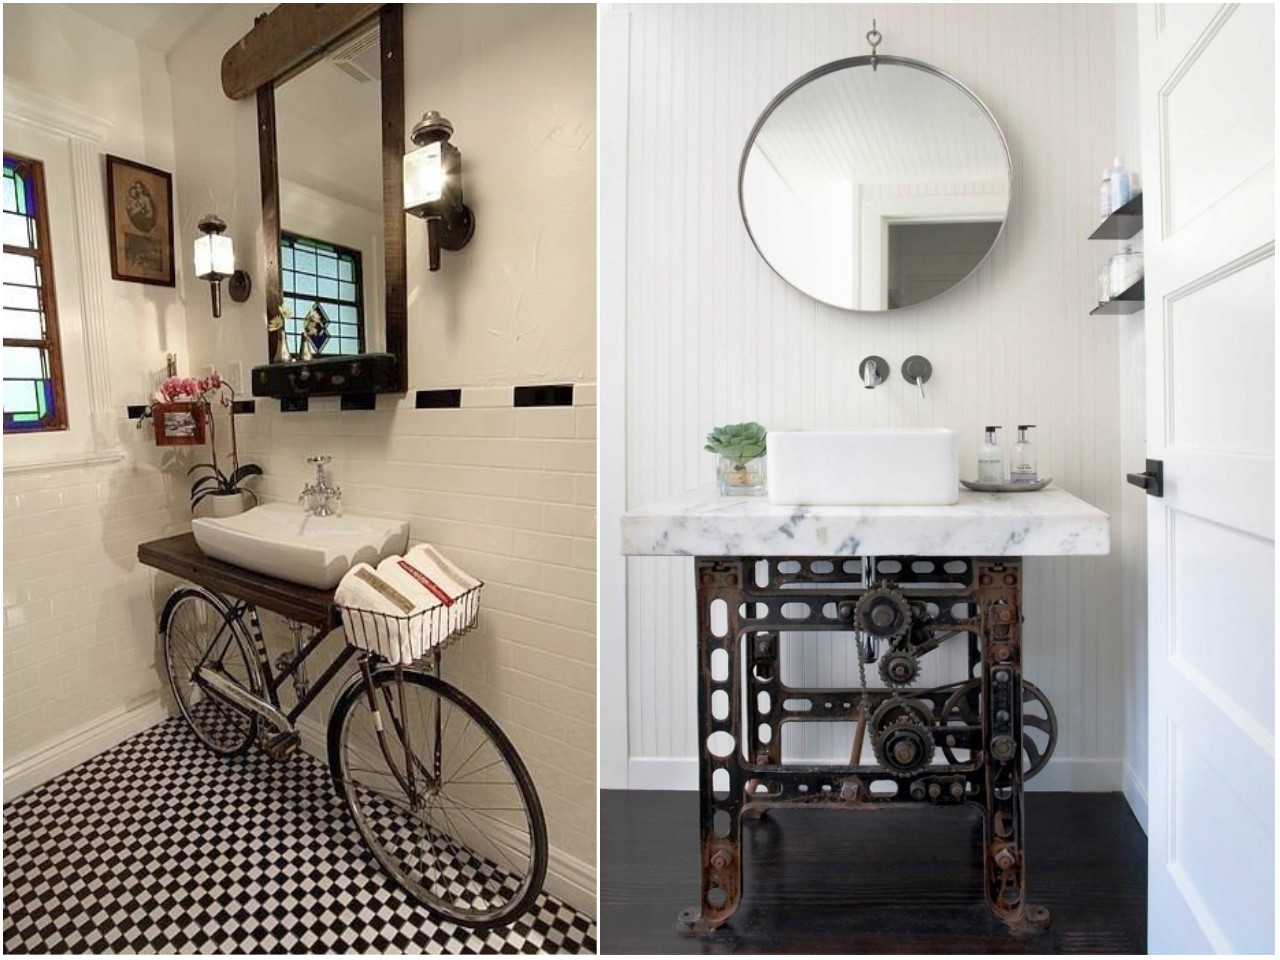 8 ideas trending para decorar ba os con estilo for Articulos decoracion baratos